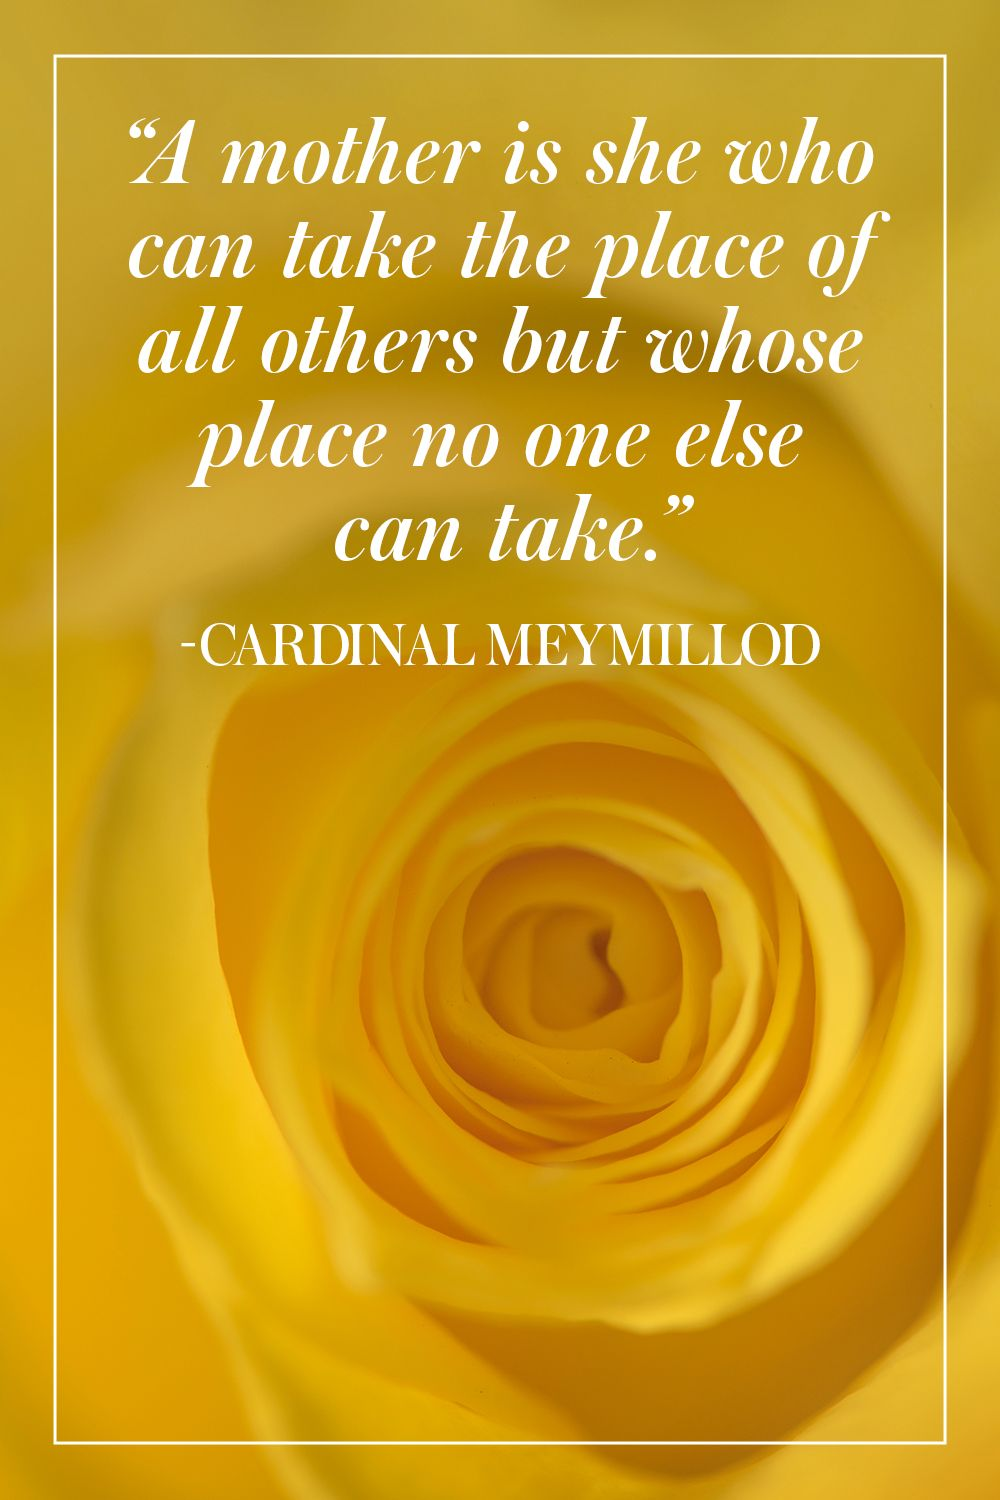 """""""A mother is she who can take the place of all others but whose place no one else can take."""" - Cardinal Meymillod"""